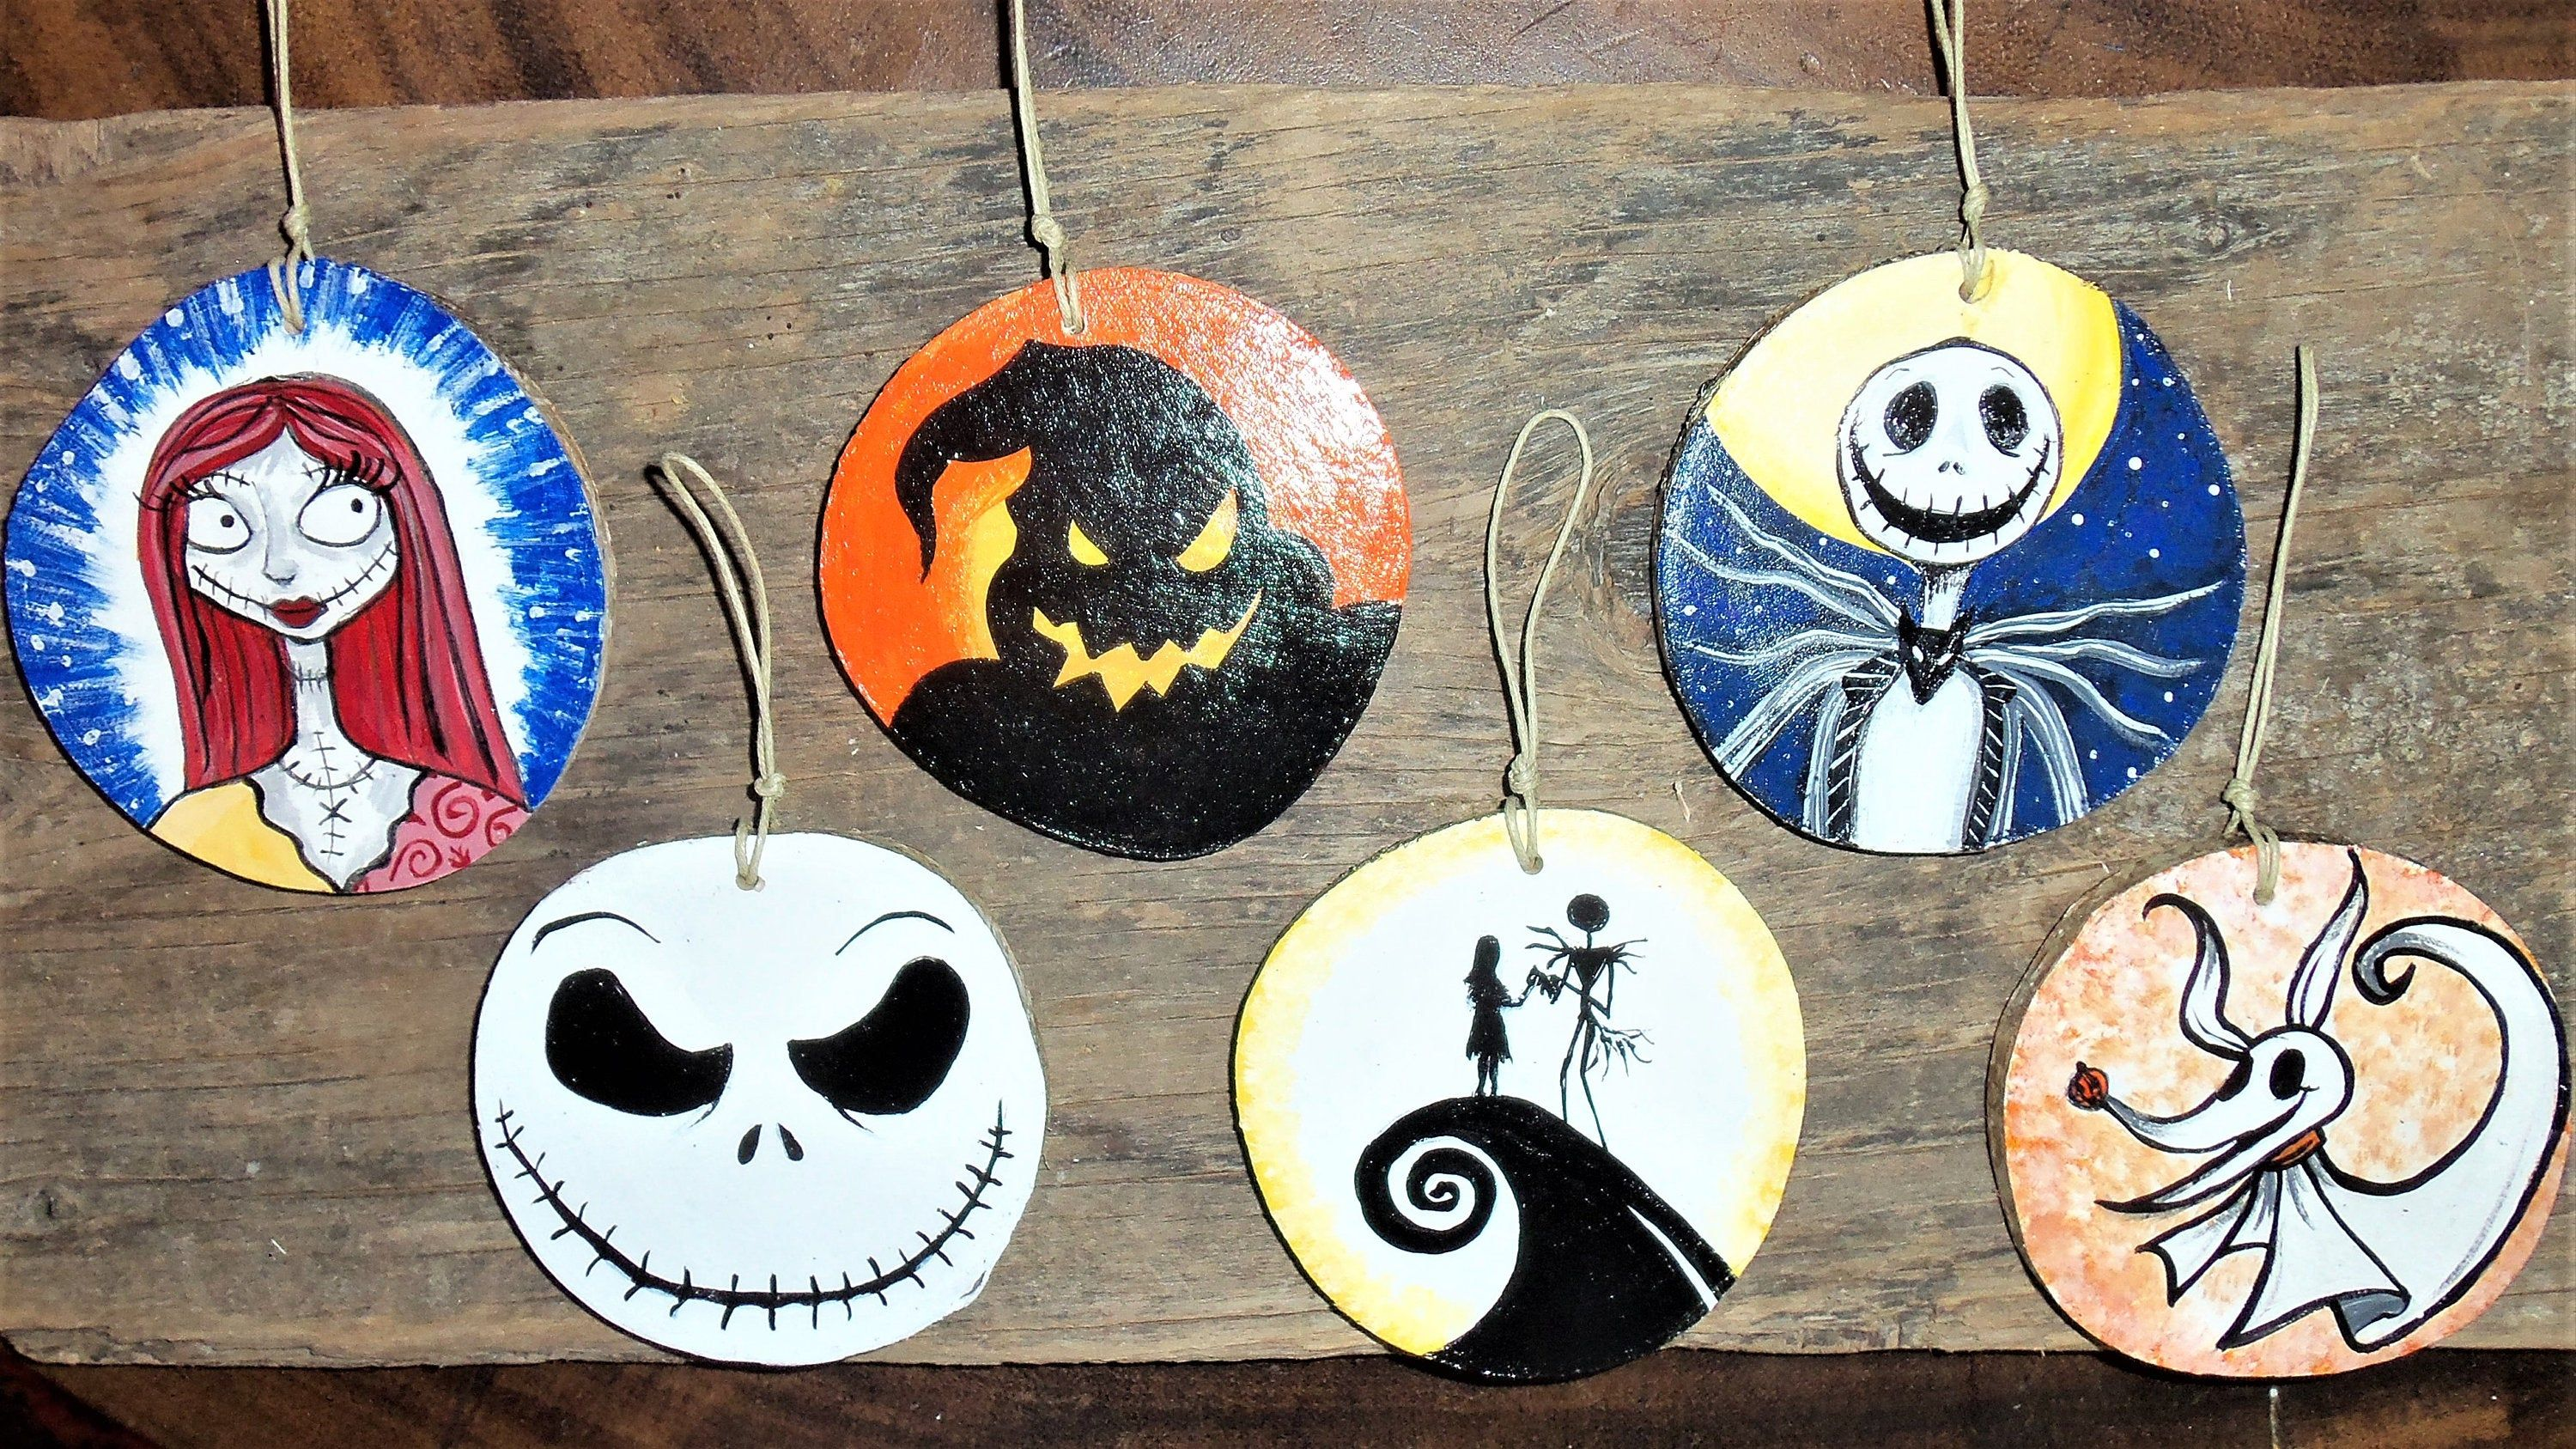 Set Of 6 Nightmare Before Christmas Ornaments Hand Painted Wood S Nightmare Before Christmas Ornaments Wood Christmas Ornaments Jack Nightmare Before Christmas